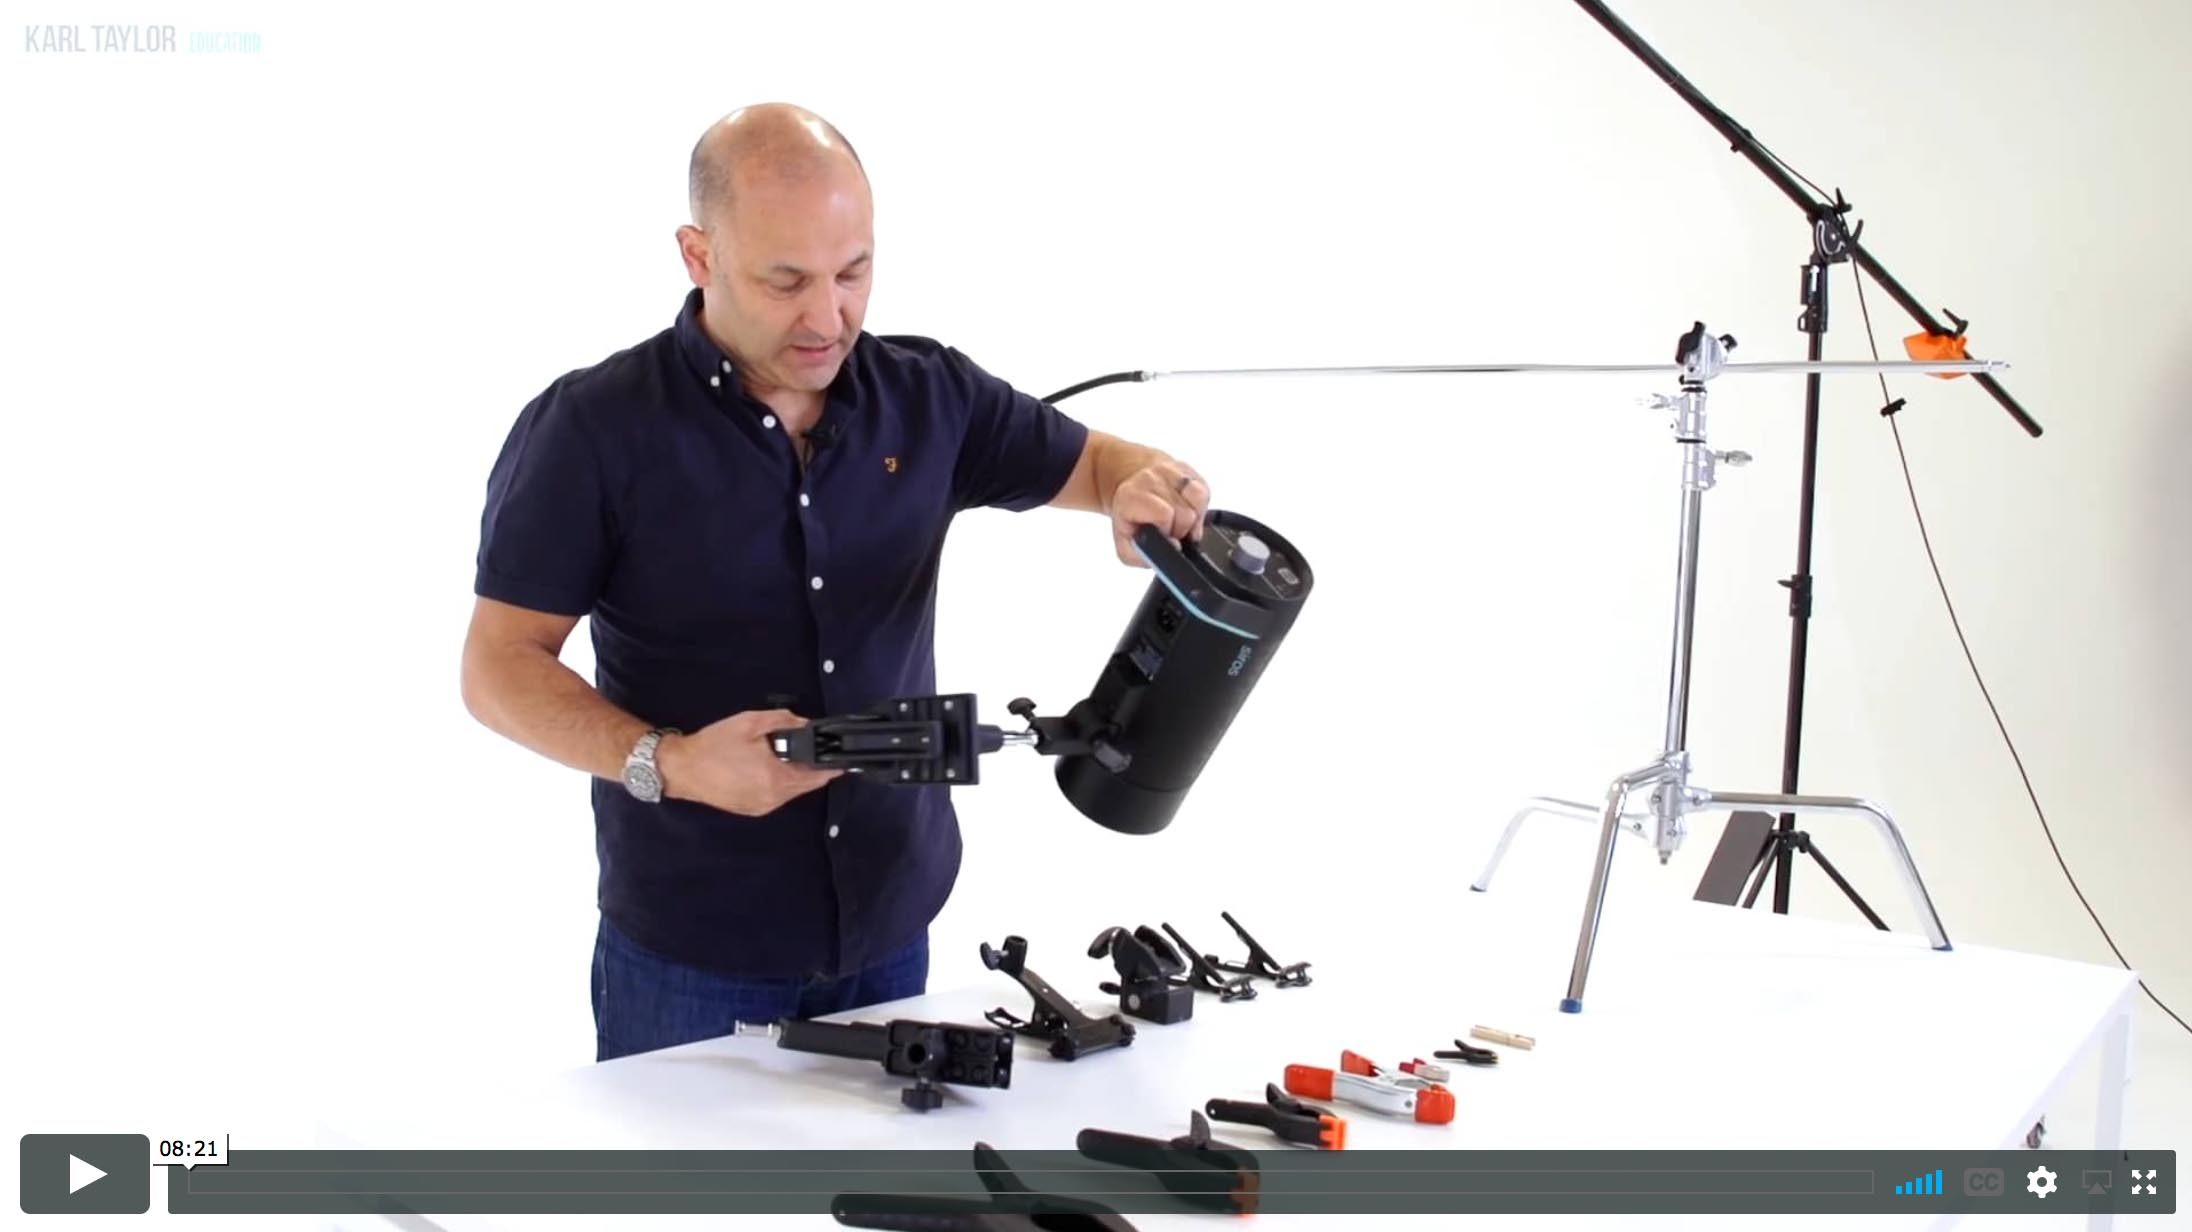 10. Grips and clamps